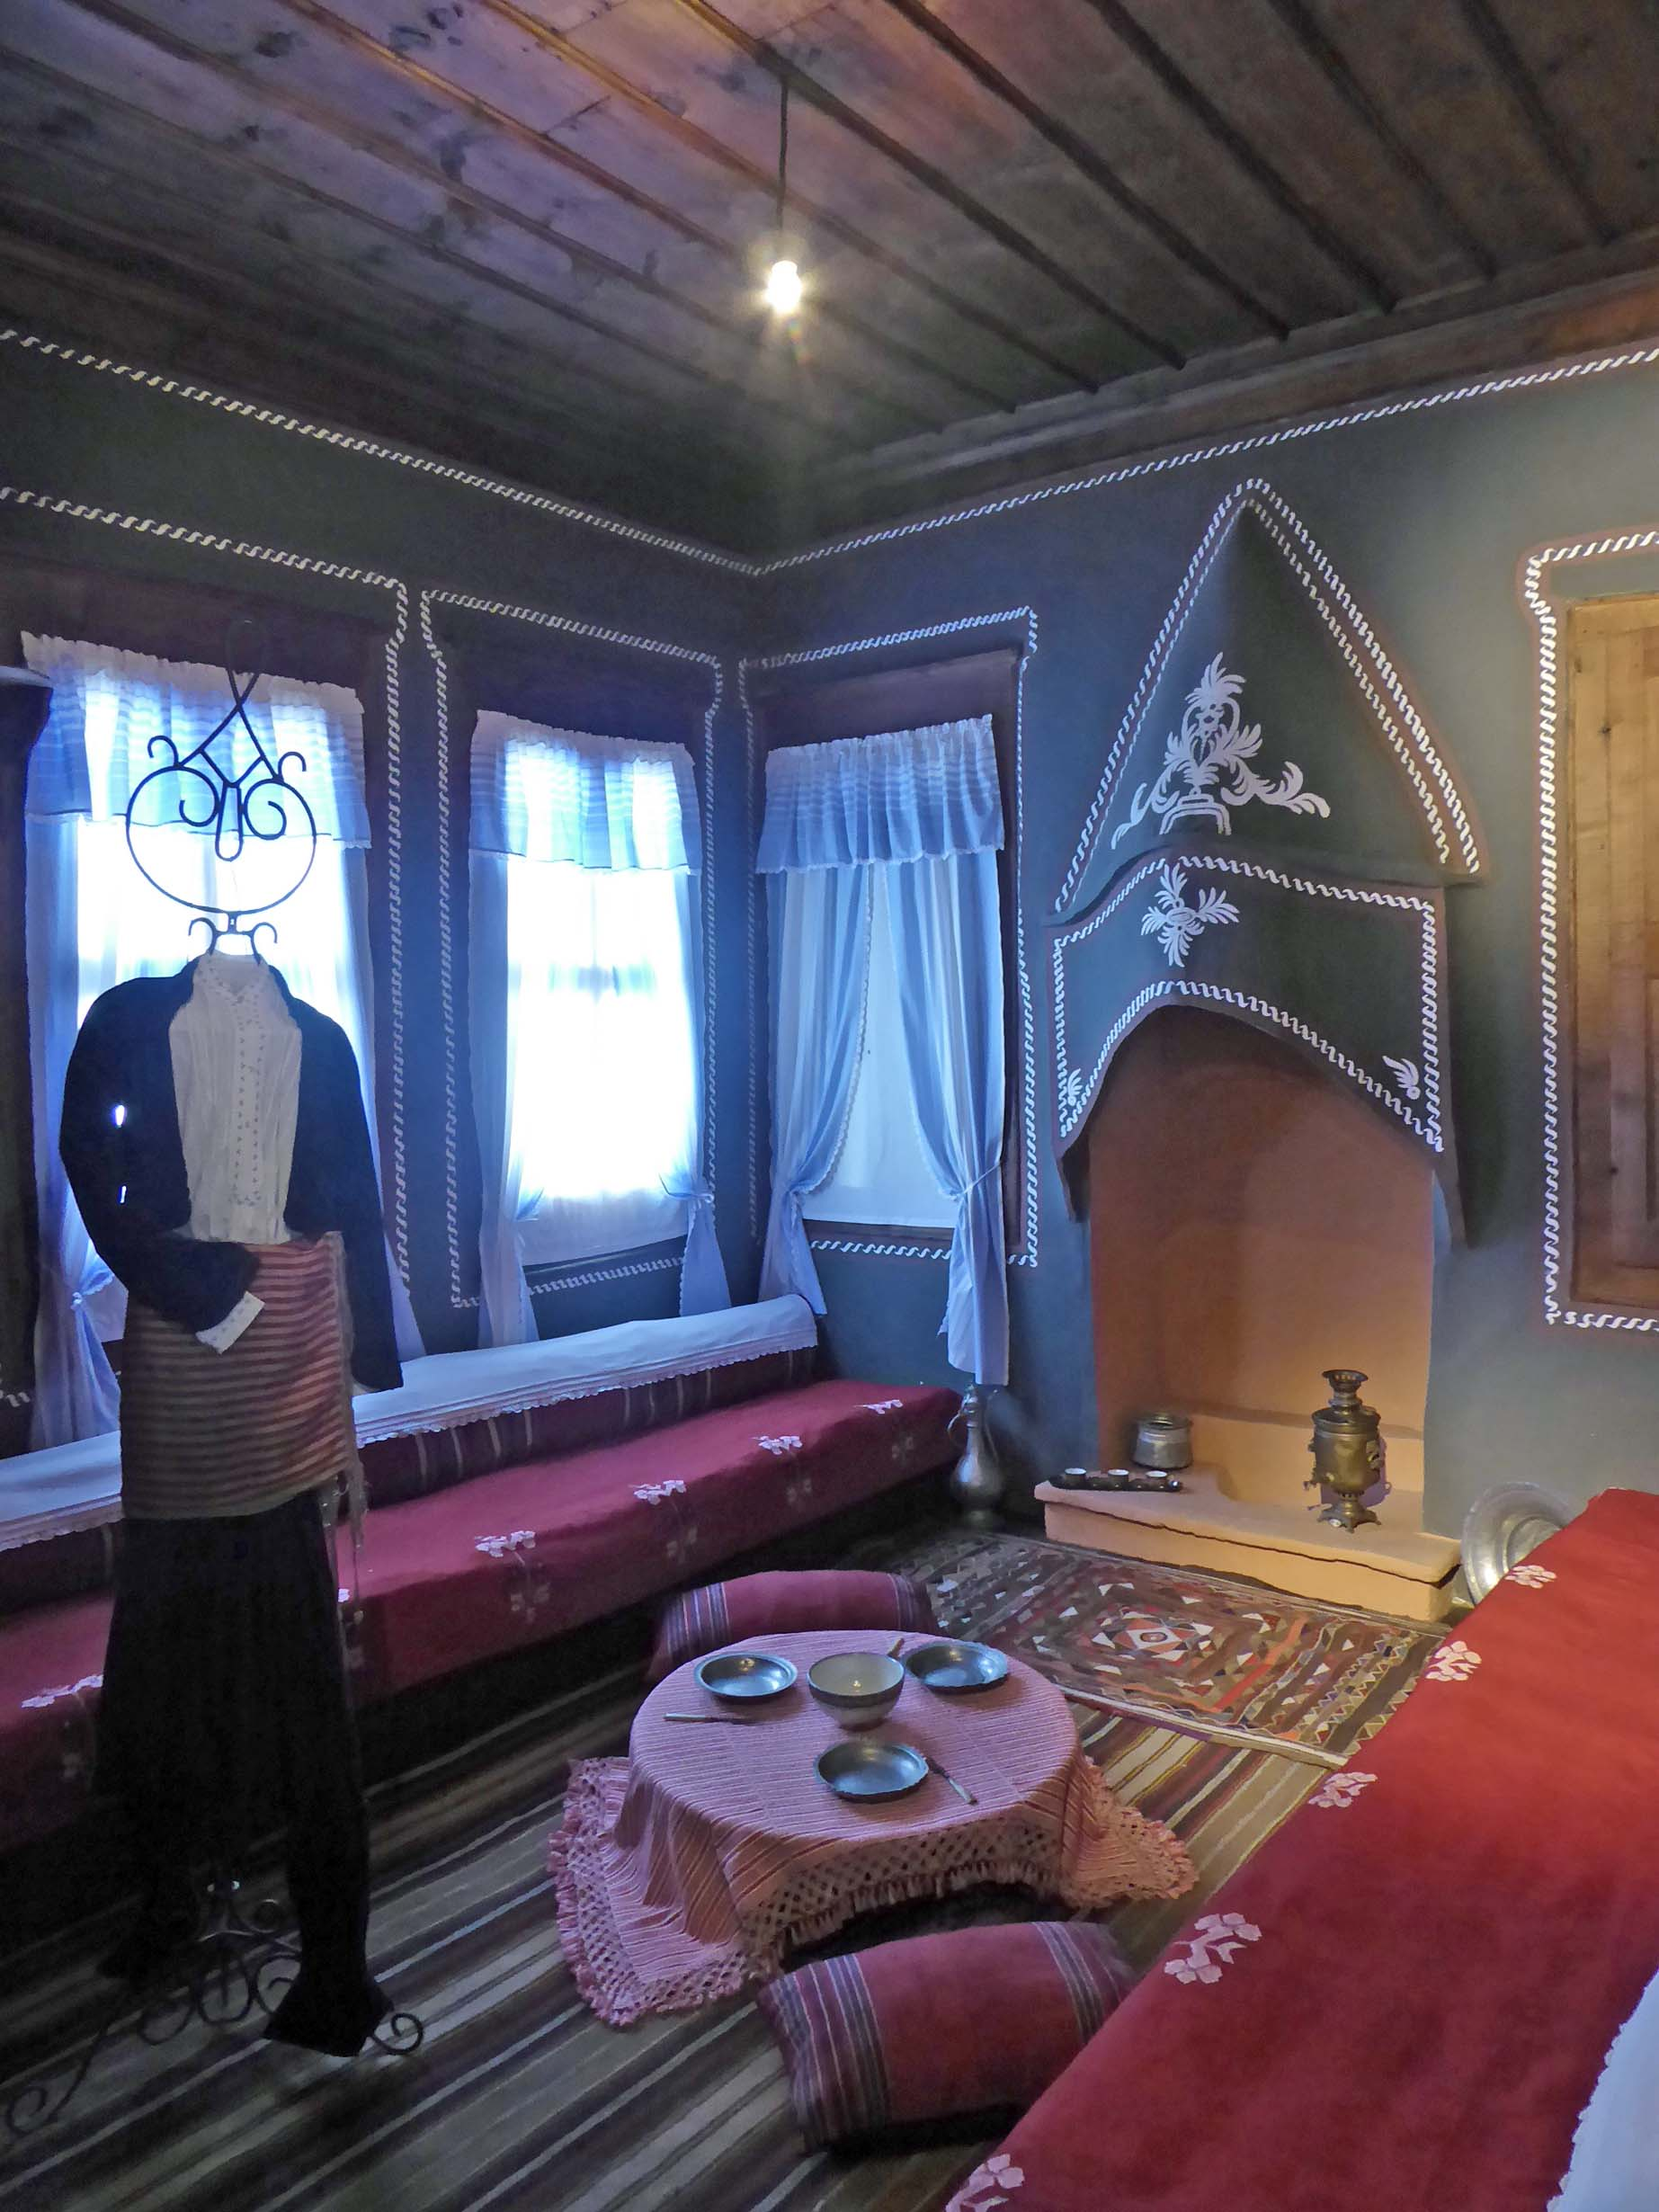 Room with mannequin in traditional man's dress